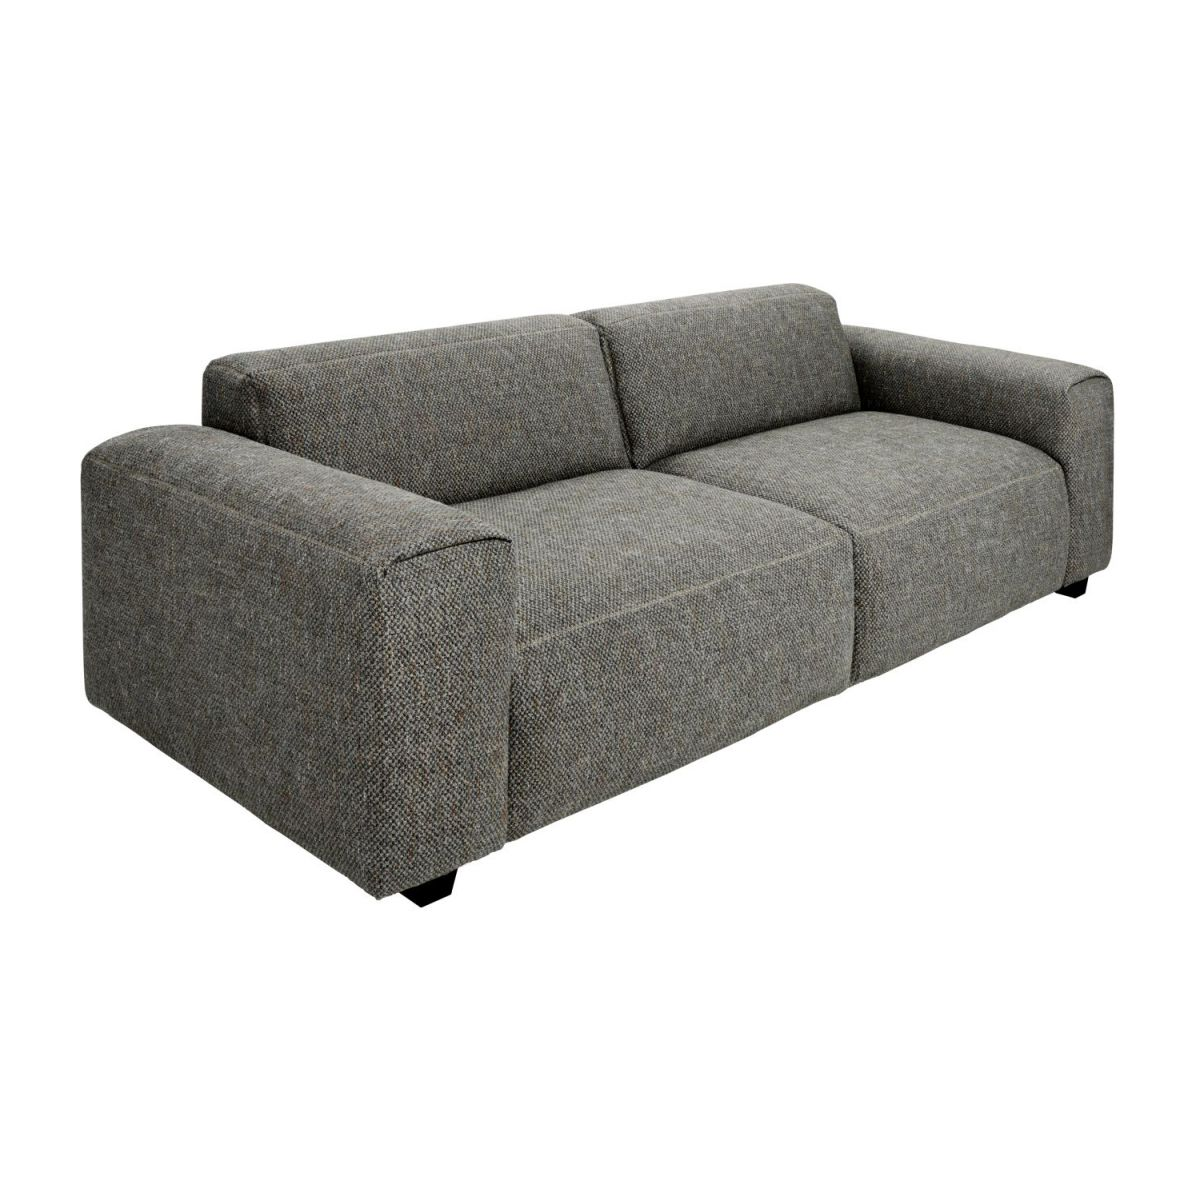 3 seater sofa in Bellagio fabric, night black n°1